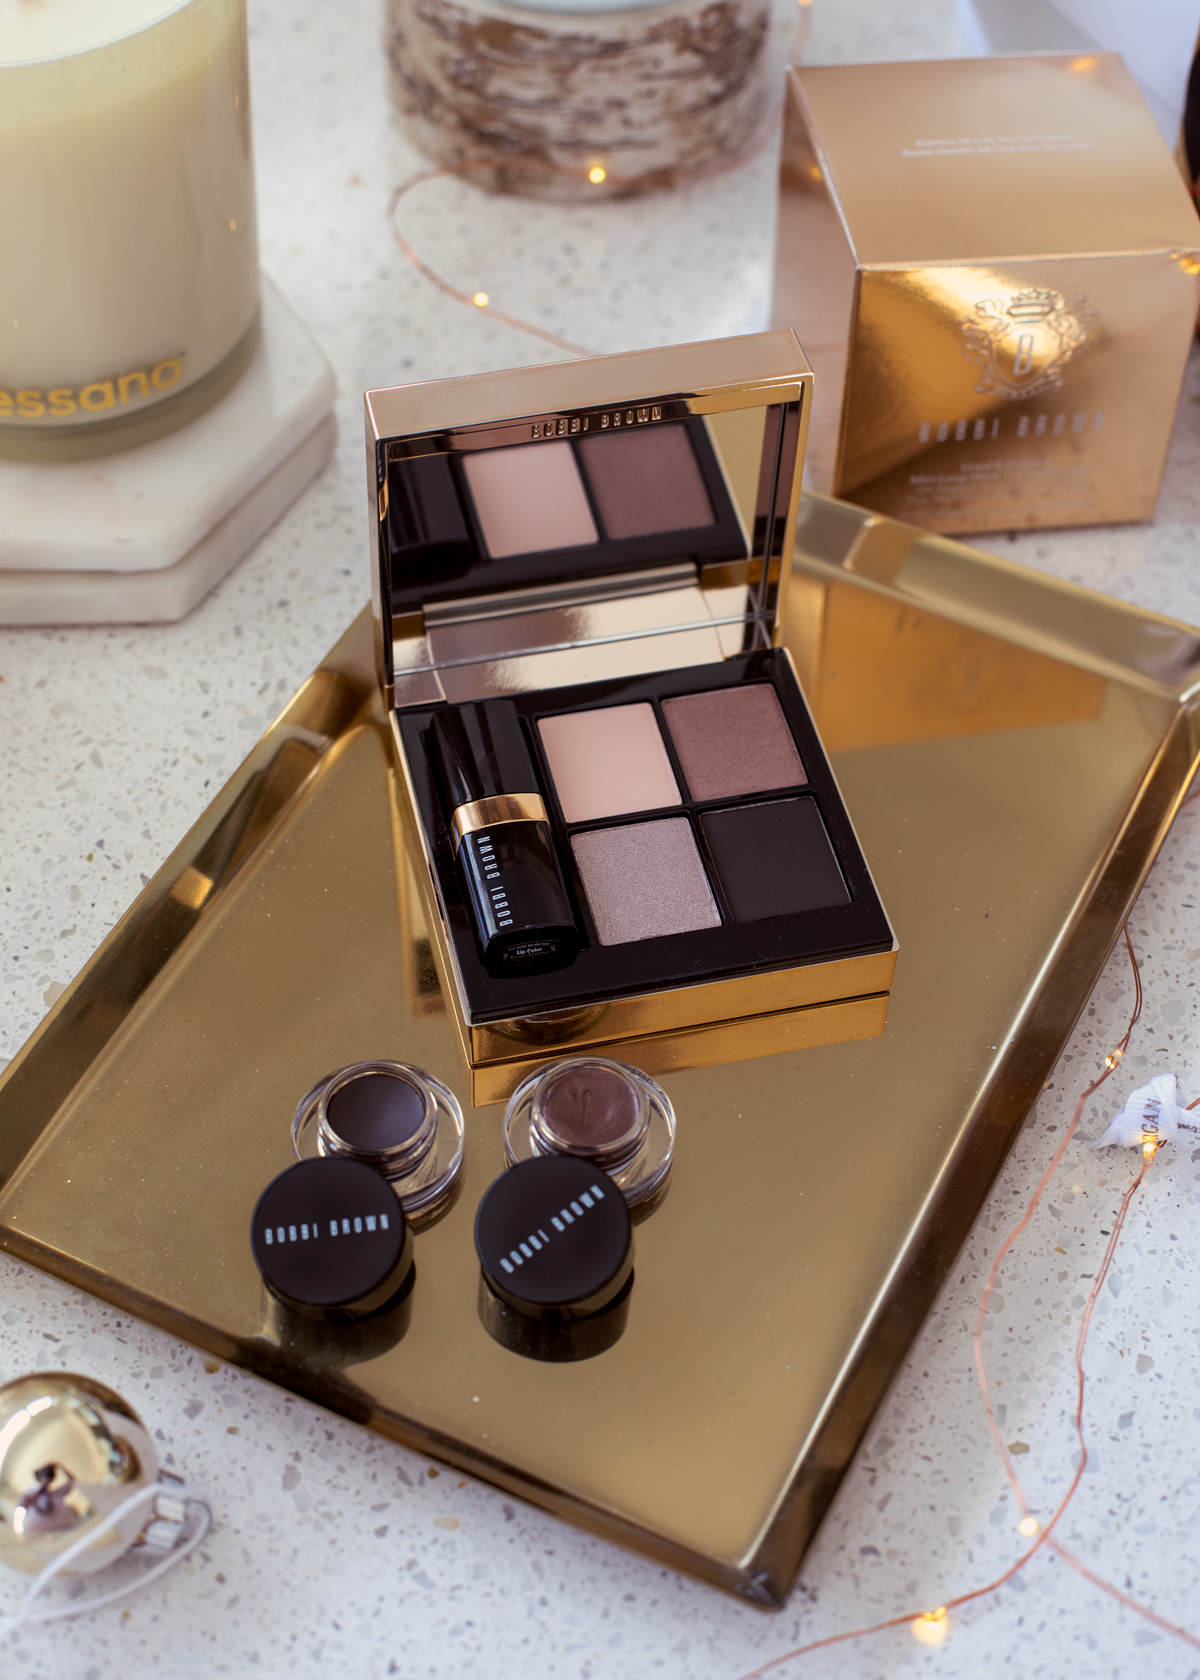 2018 Christmas gift guide Inspiring Wit blog featuring beauty gift ideas Bobbi Brown Christmas gift sets